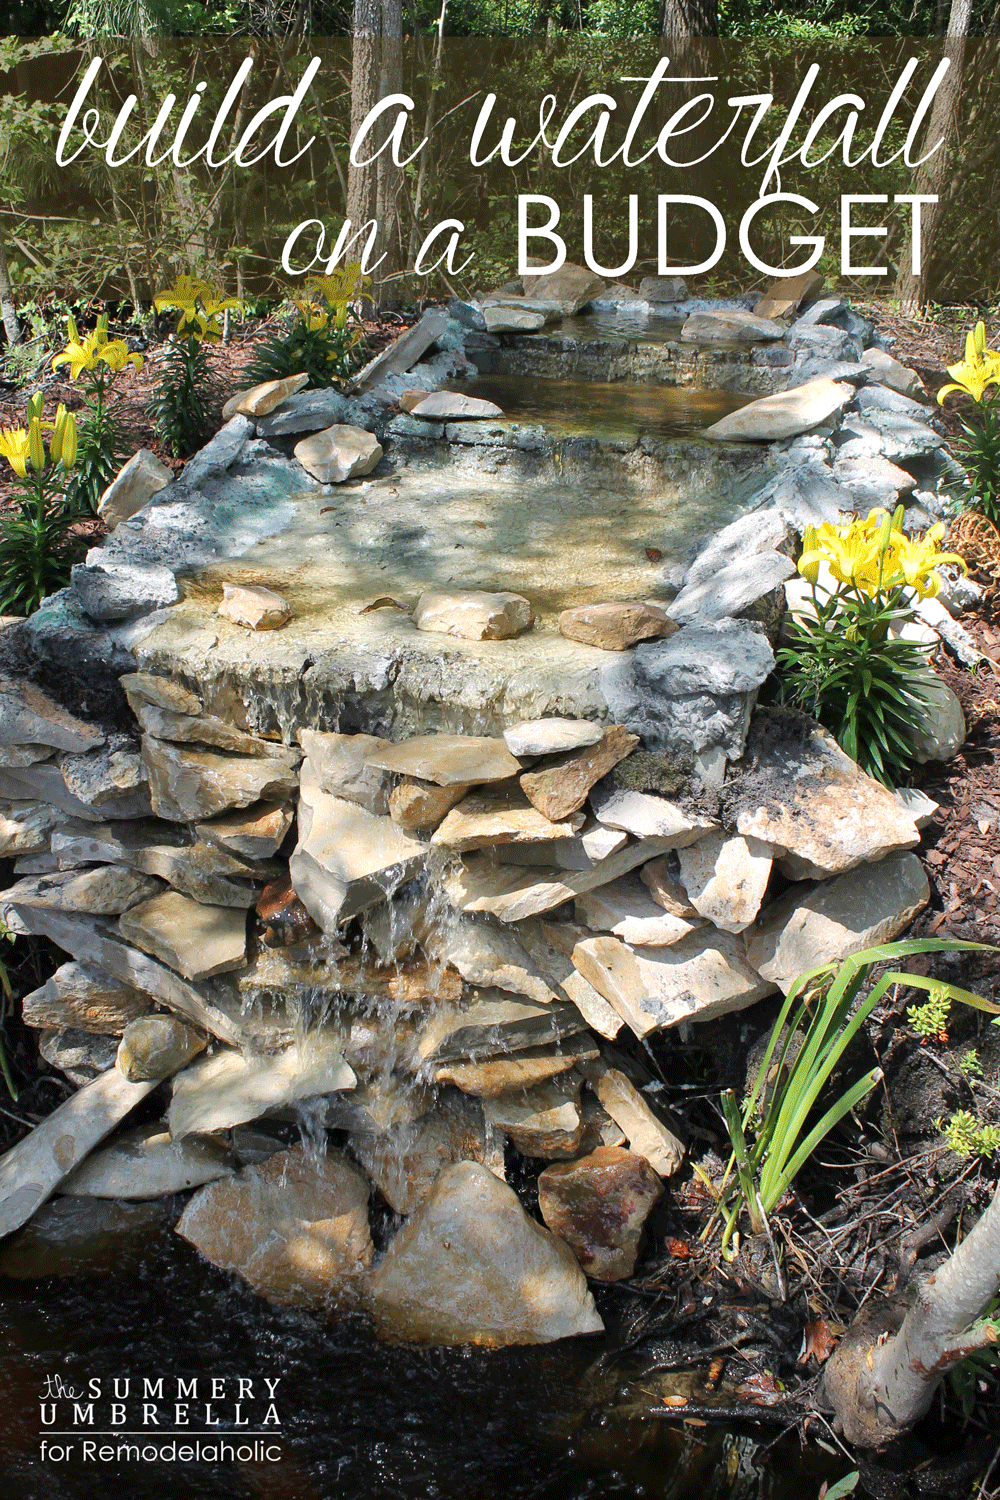 How To Build A Waterfall On A Budget That You Will Love Waterfalls Backyard Ponds Backyard Diy Pond Waterfall